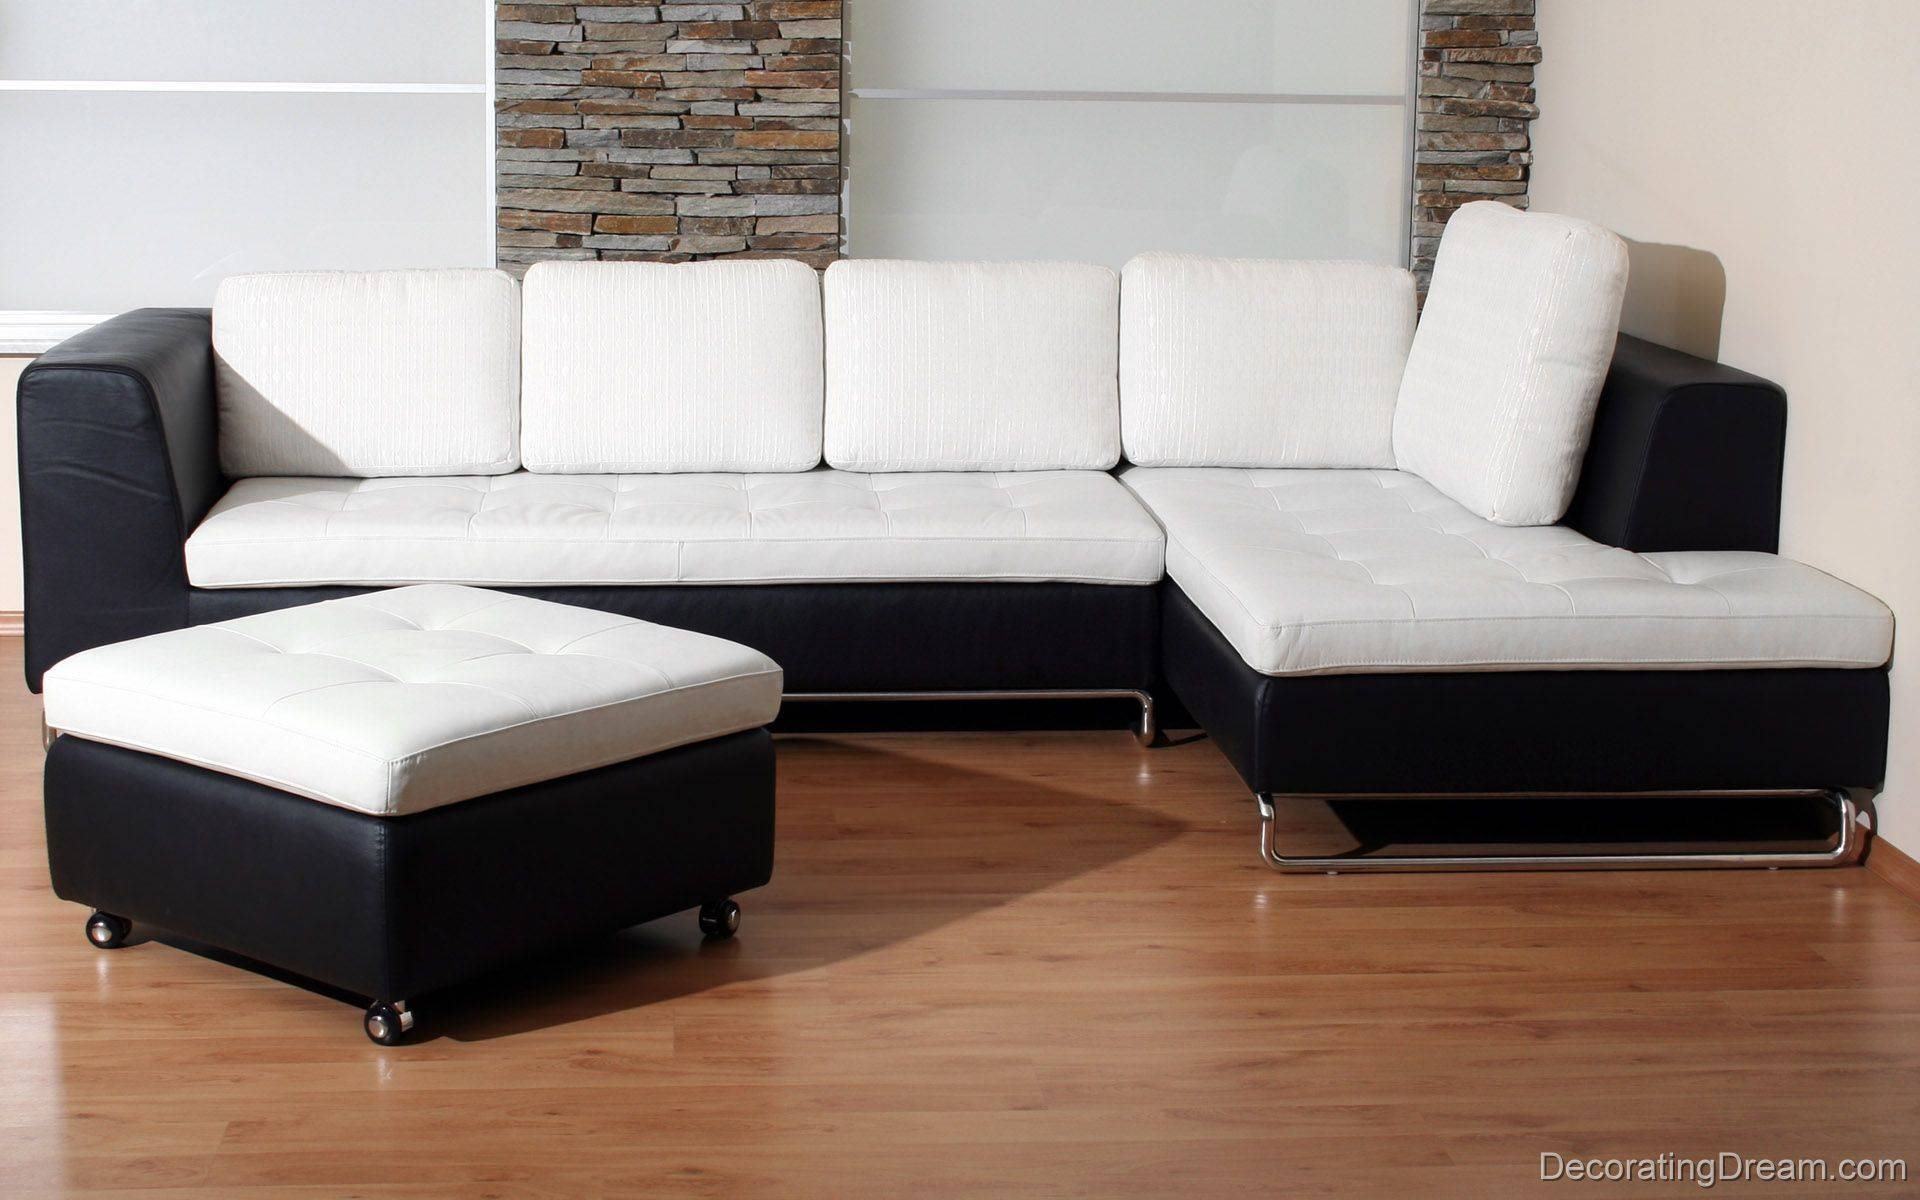 30 Collection of White and Black Sofas